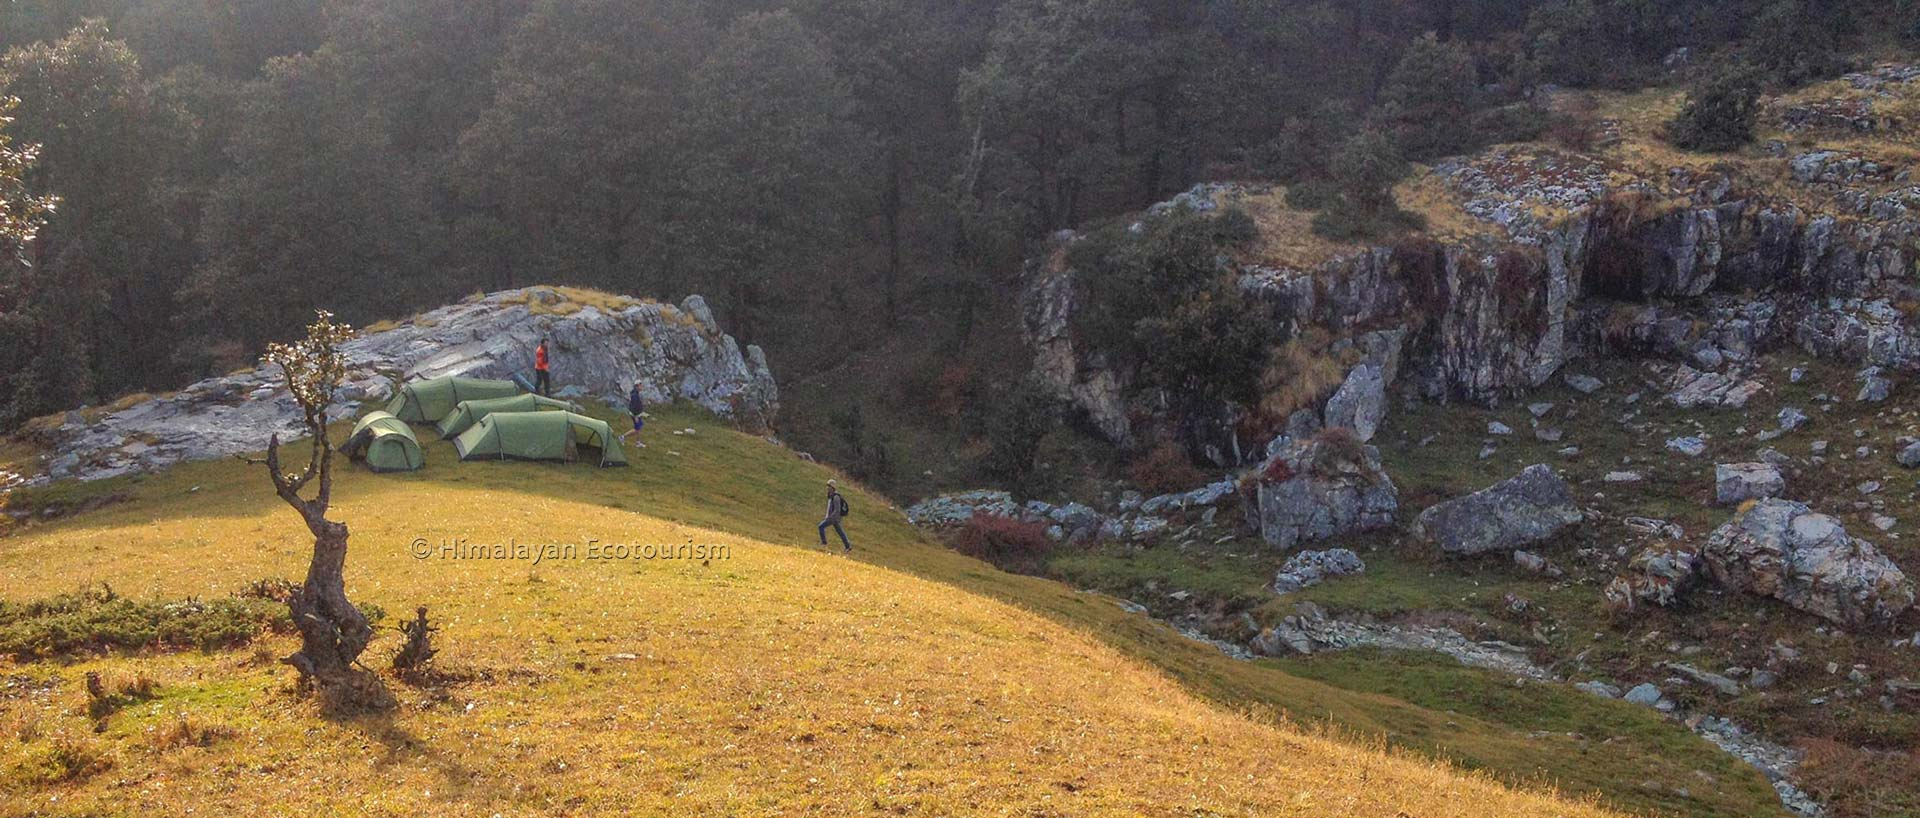 Camping at the Great Himalayan National Park GHNP